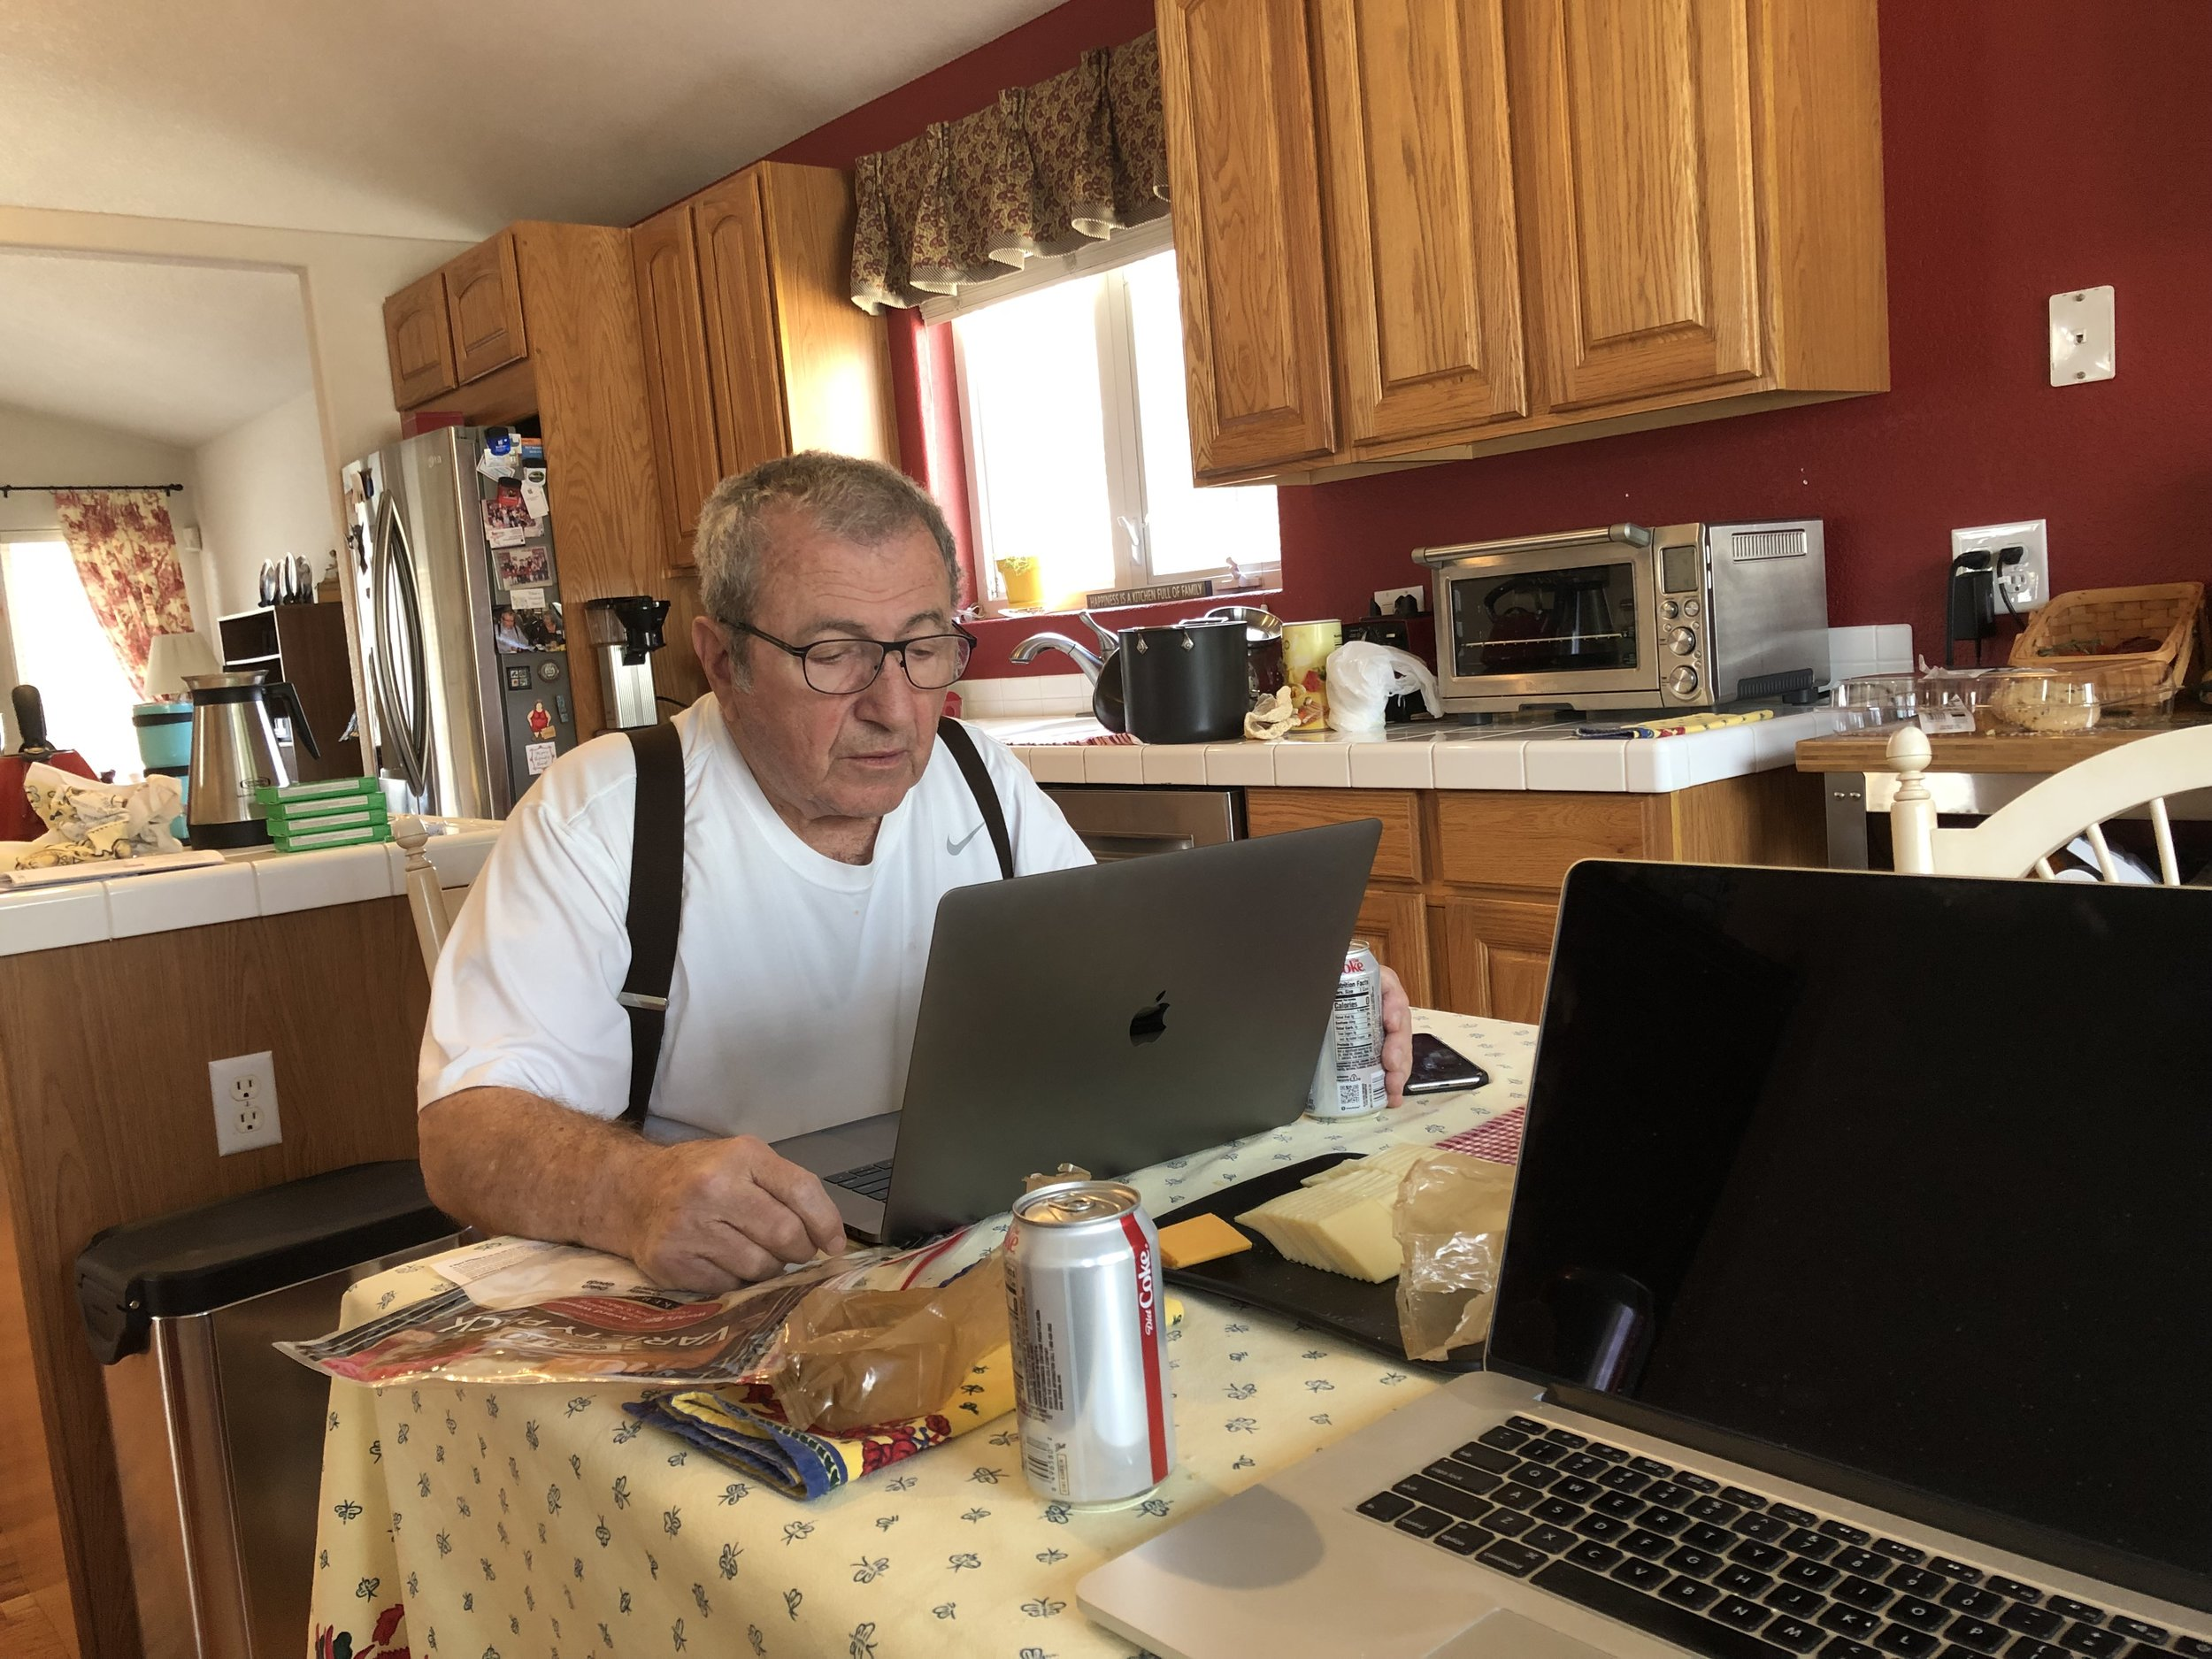 A Working Lunch: My husband and I often worked side by side in all that went into developing this new website.